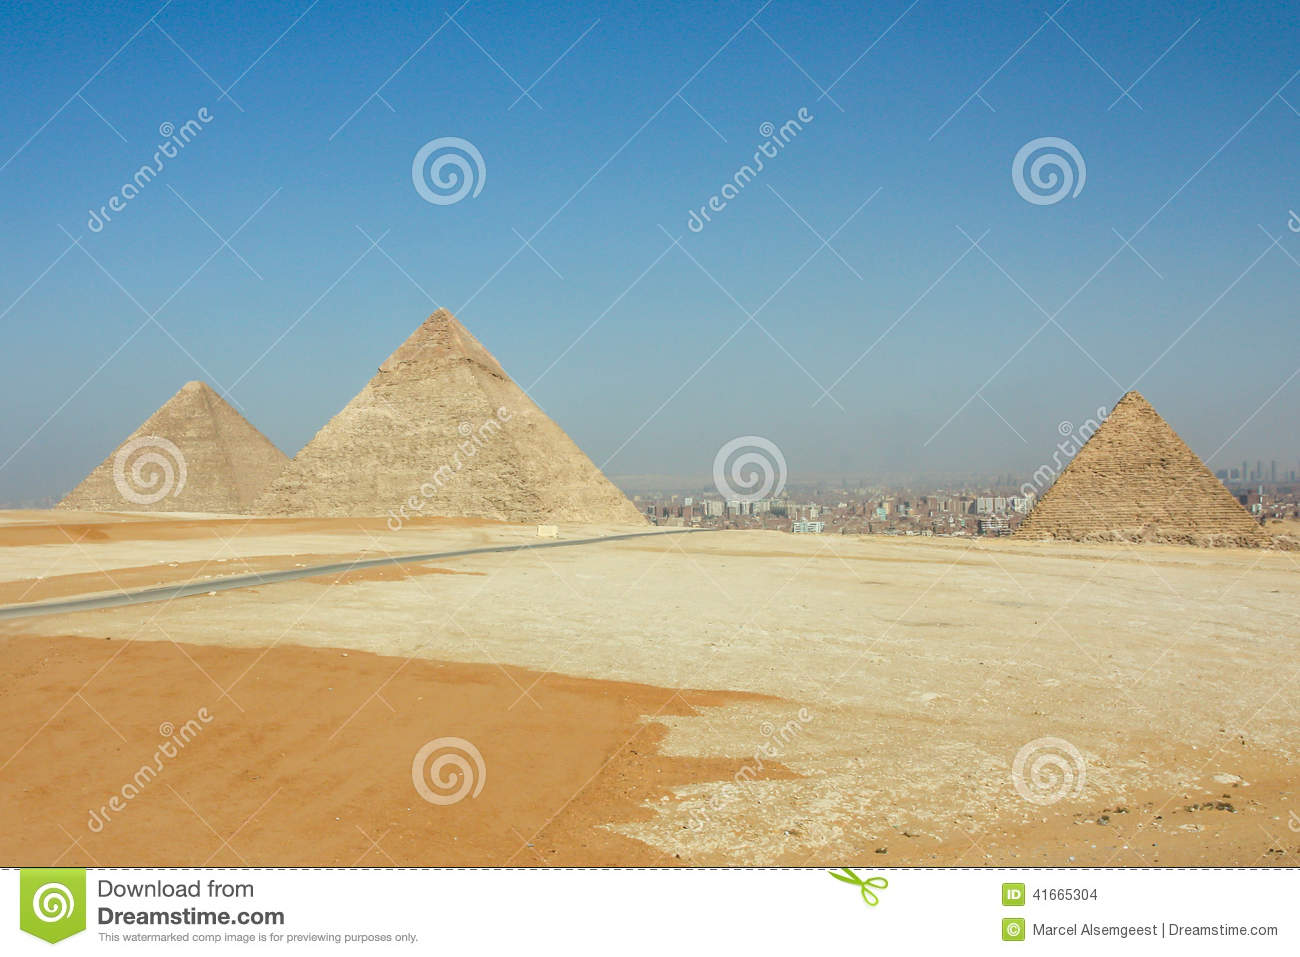 The three Pyramids of Gizeh